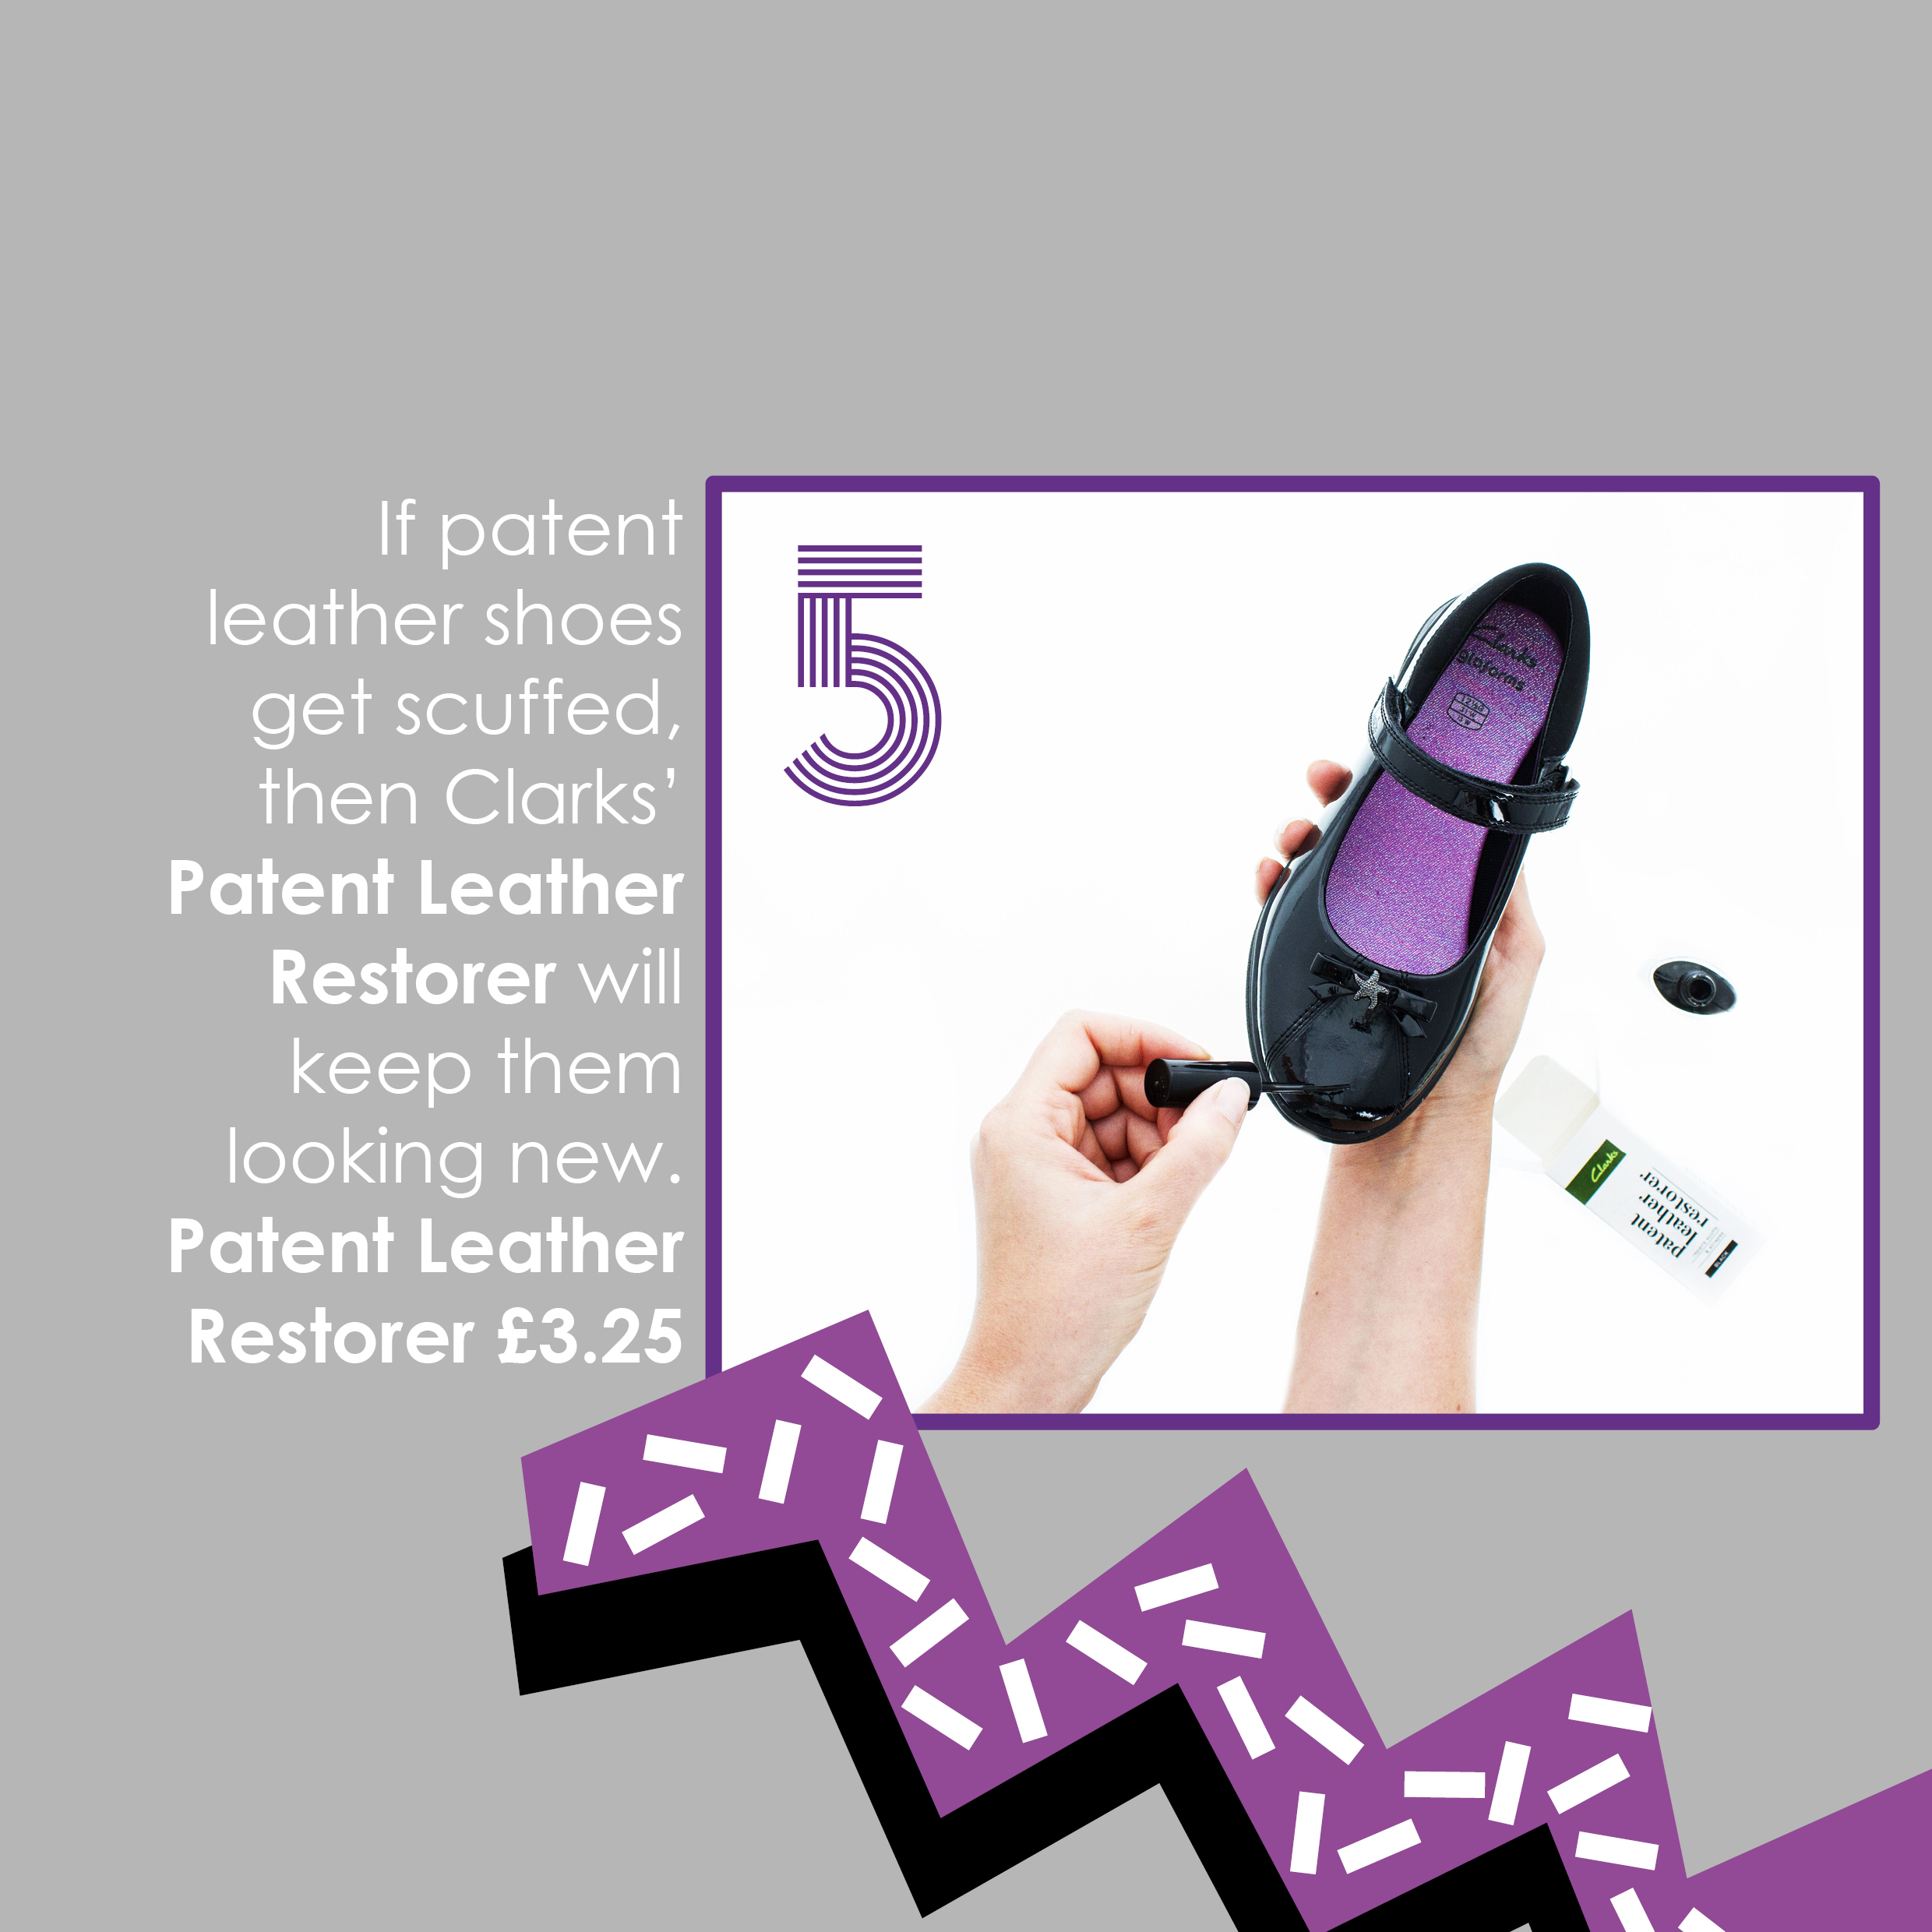 Patent Leather Restorer £3.25